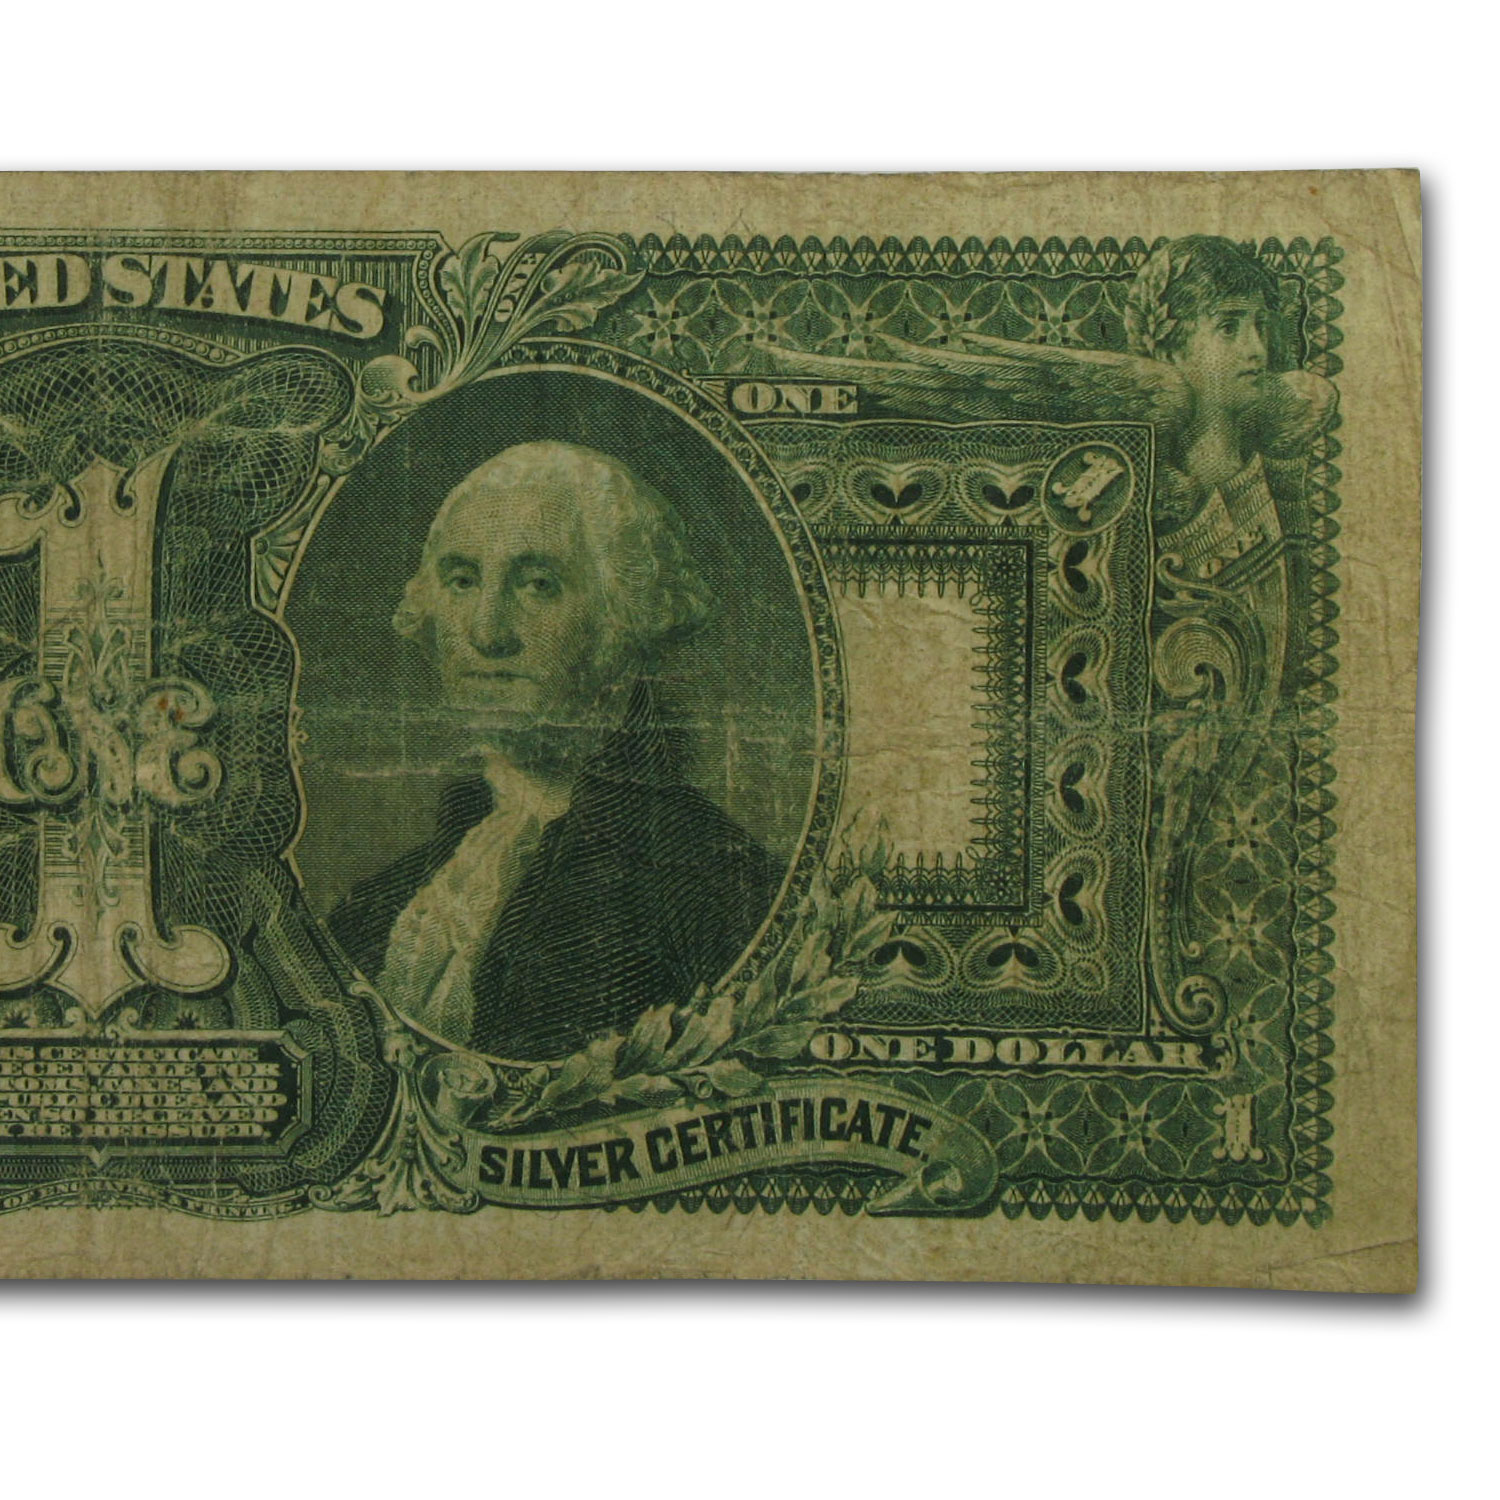 1896 $1.00 Silver Certificate Educational (Fine)